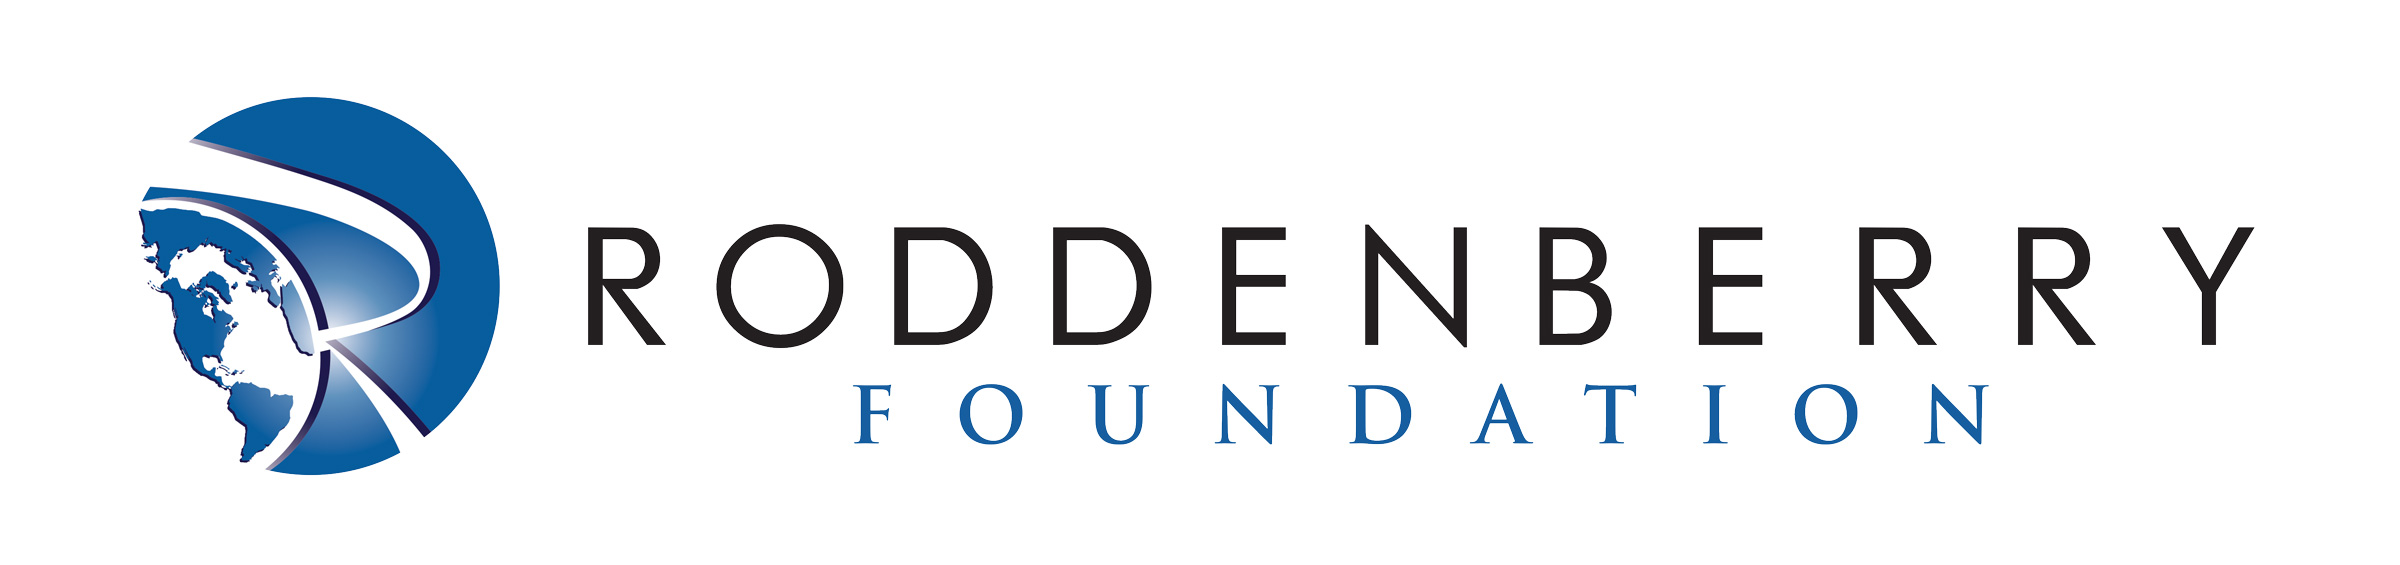 Roddenberry Foundation Logo .jpg